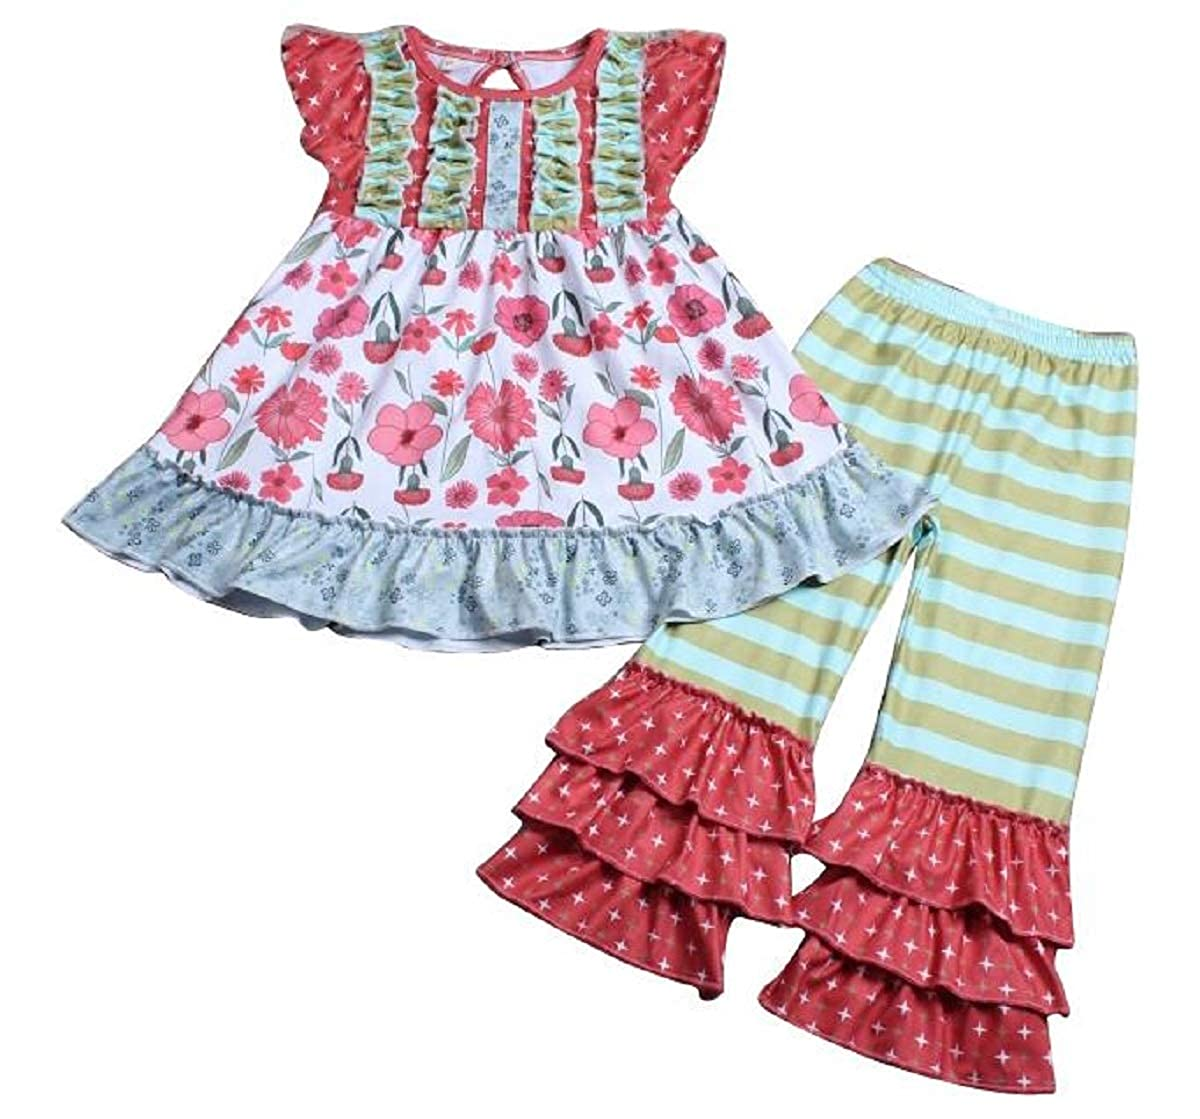 YSE-Yourself Expression Poppy Princess Outfit